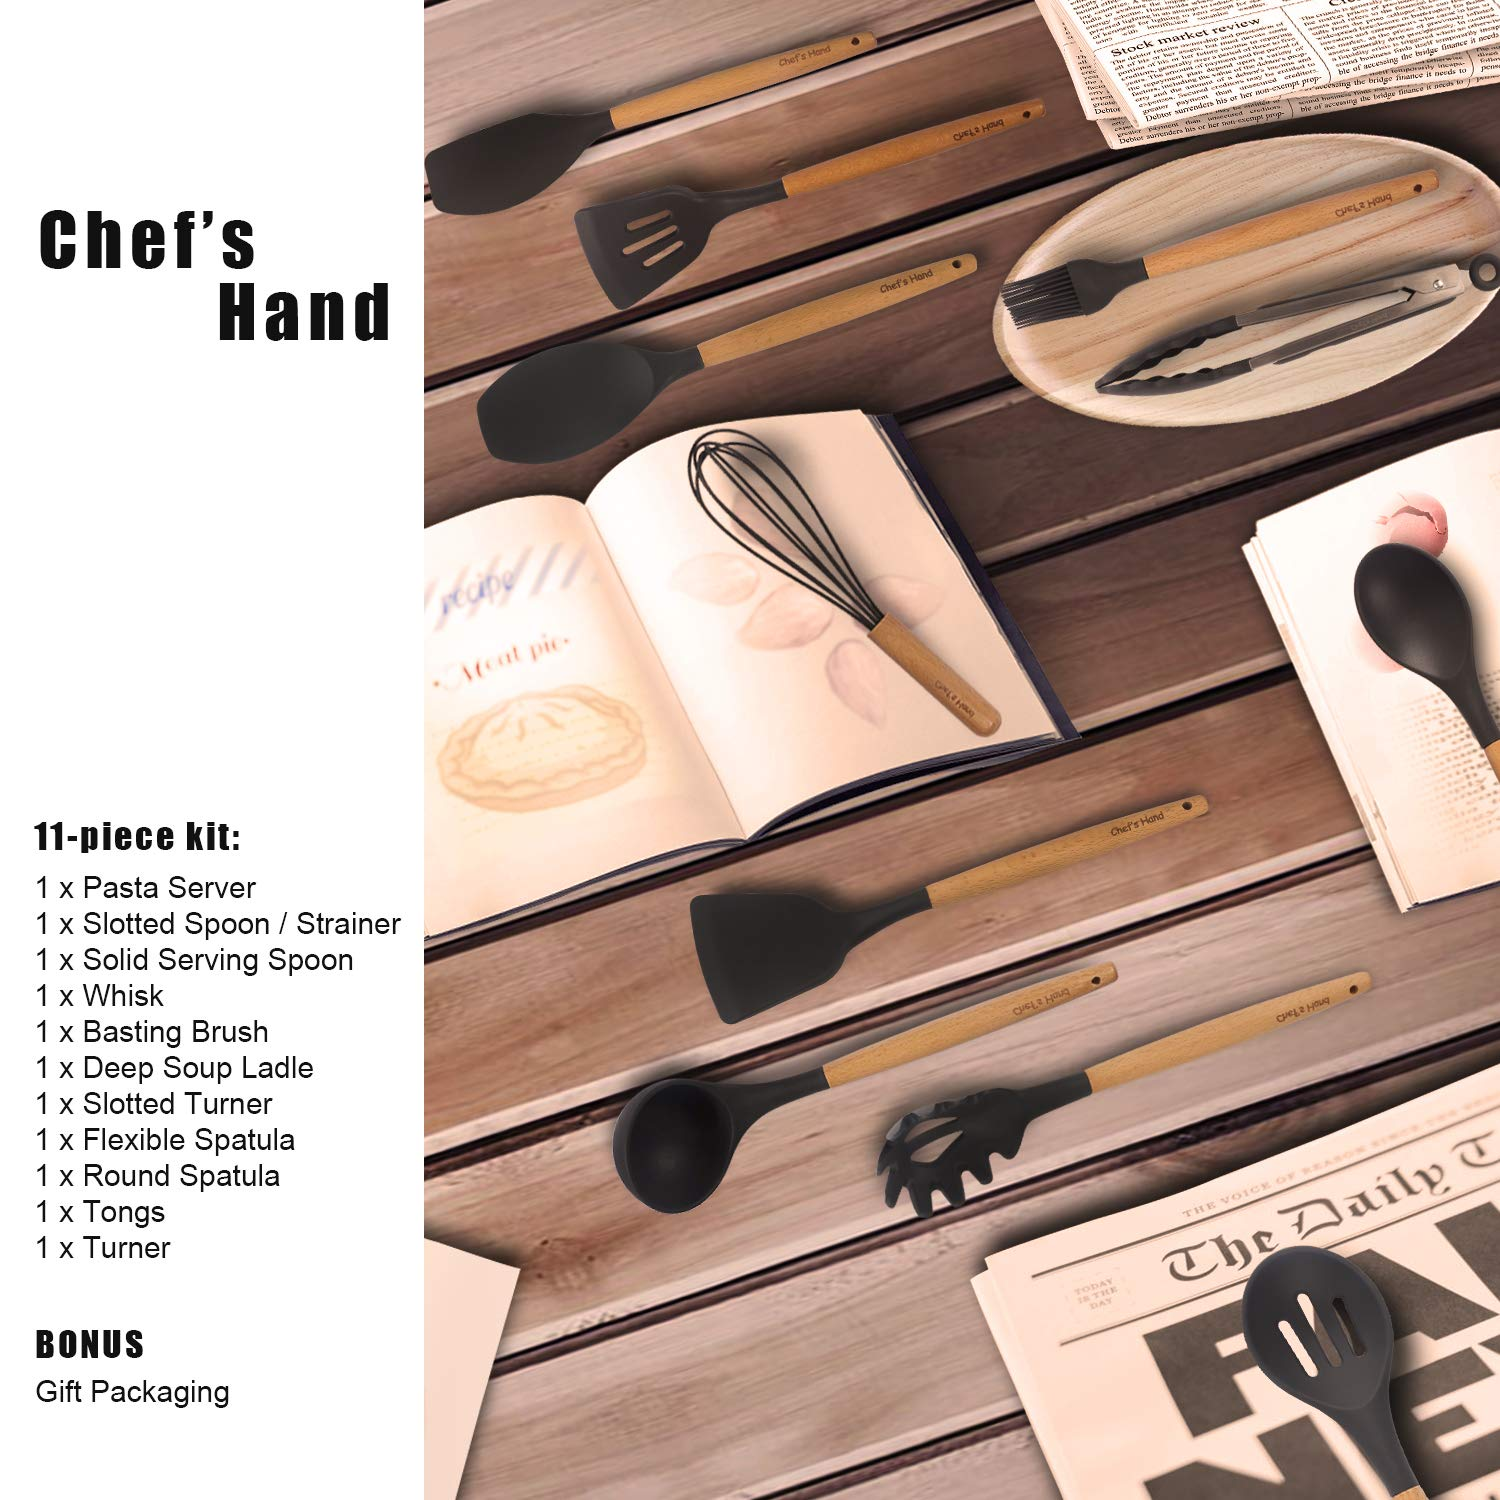 Kitchen Utensil Set - 11 Piece Cooking Utensils - Non-stick Silicone and Wooden Utensils. BPA Free, Non Toxic Turner Tongs Spatula Spoon Set. Best Chef Kitchen Tool Set Gray - Chef's Hand by Chef's Hand (Image #7)